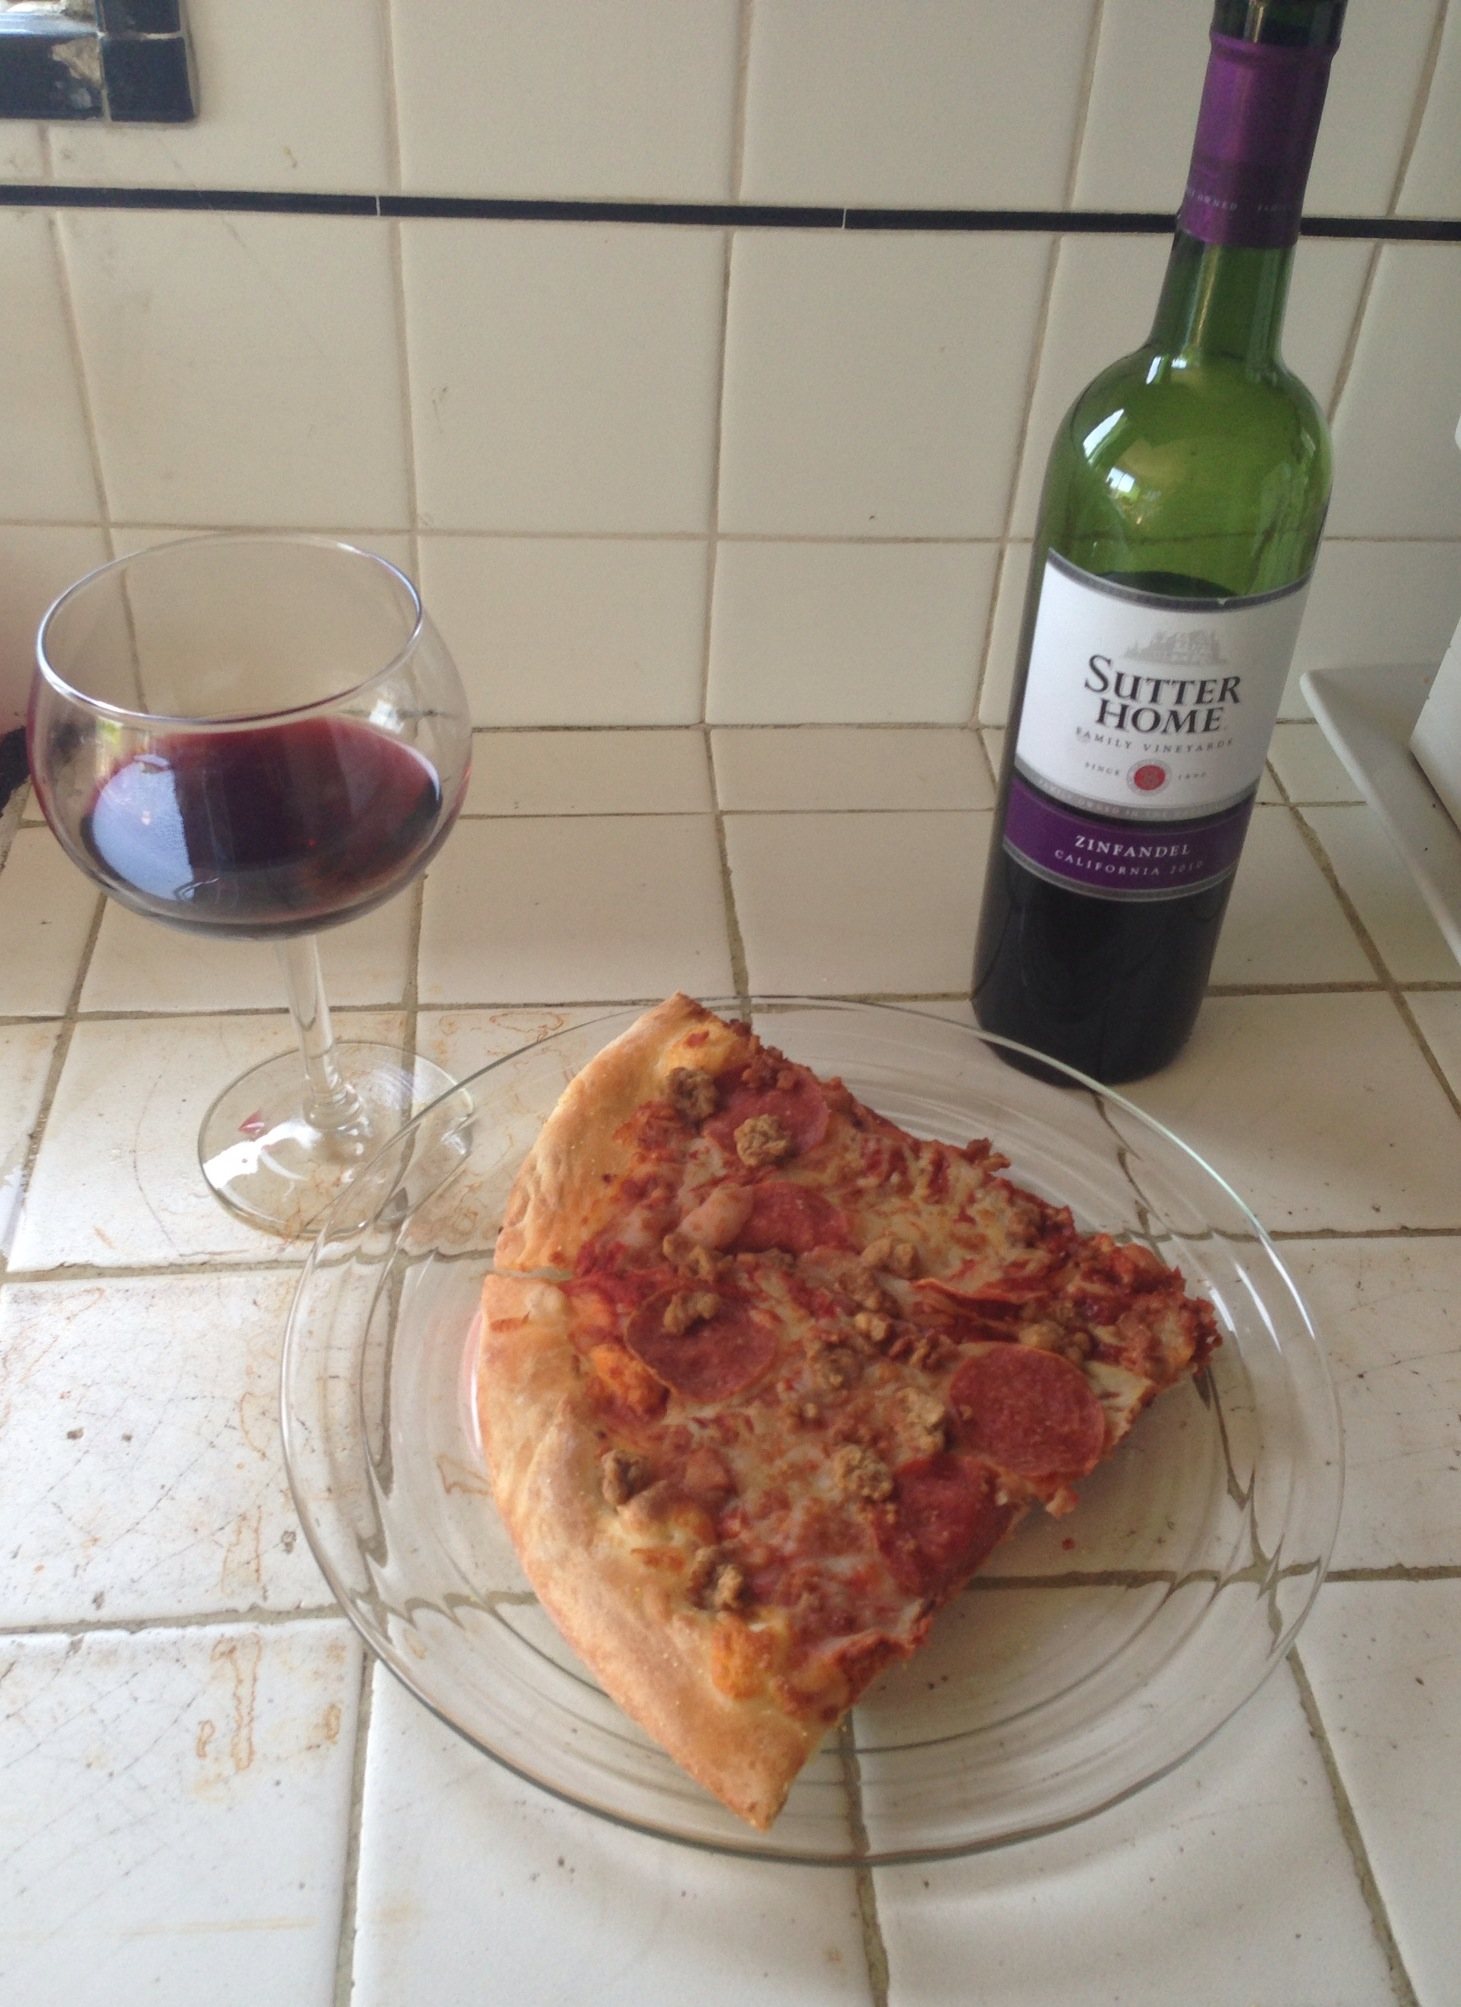 Having a Casual Slice of Pizza with my Wine!